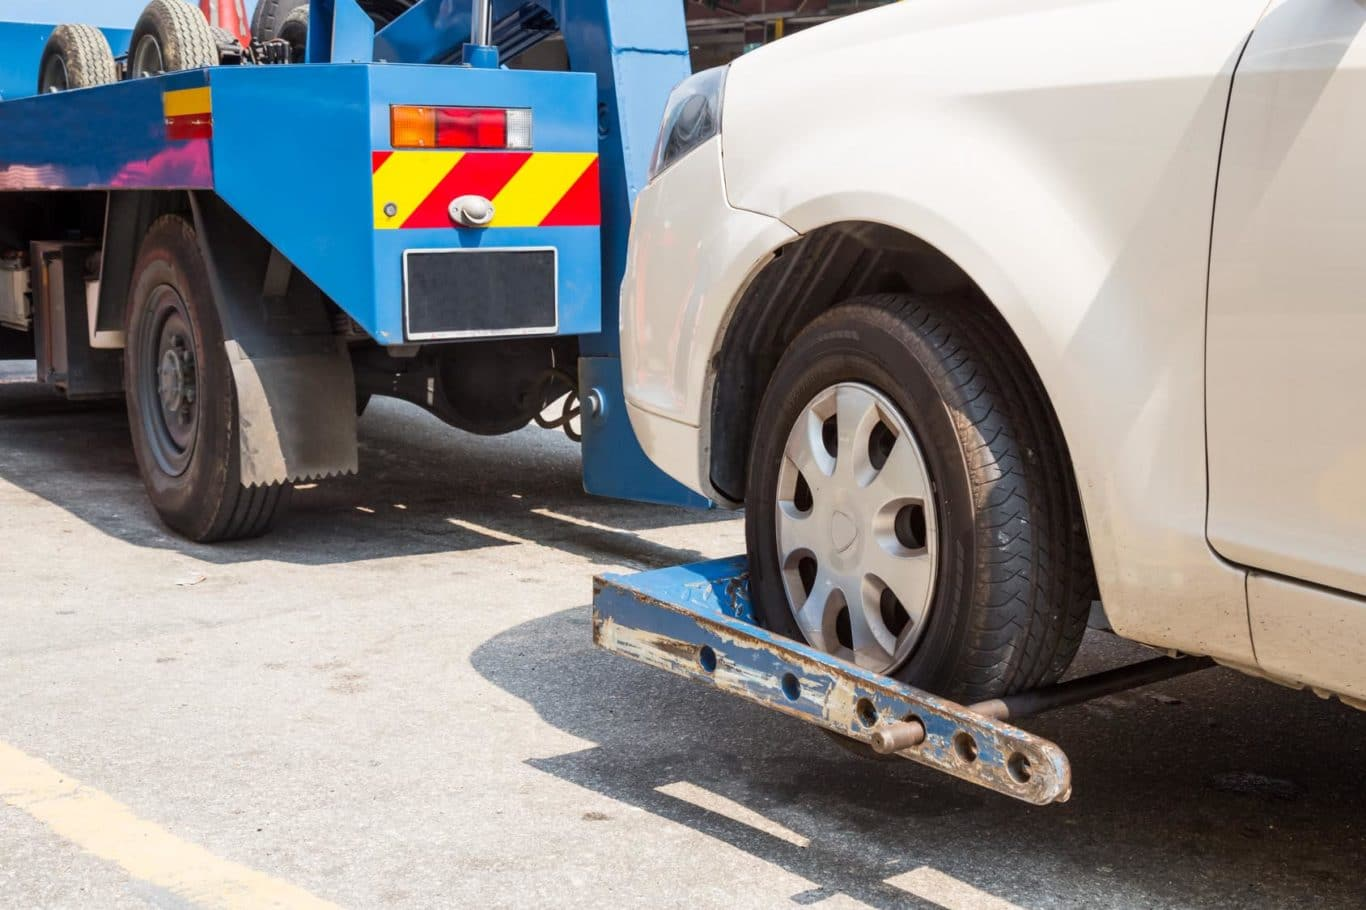 Rathangan expert Breakdown Assistance services